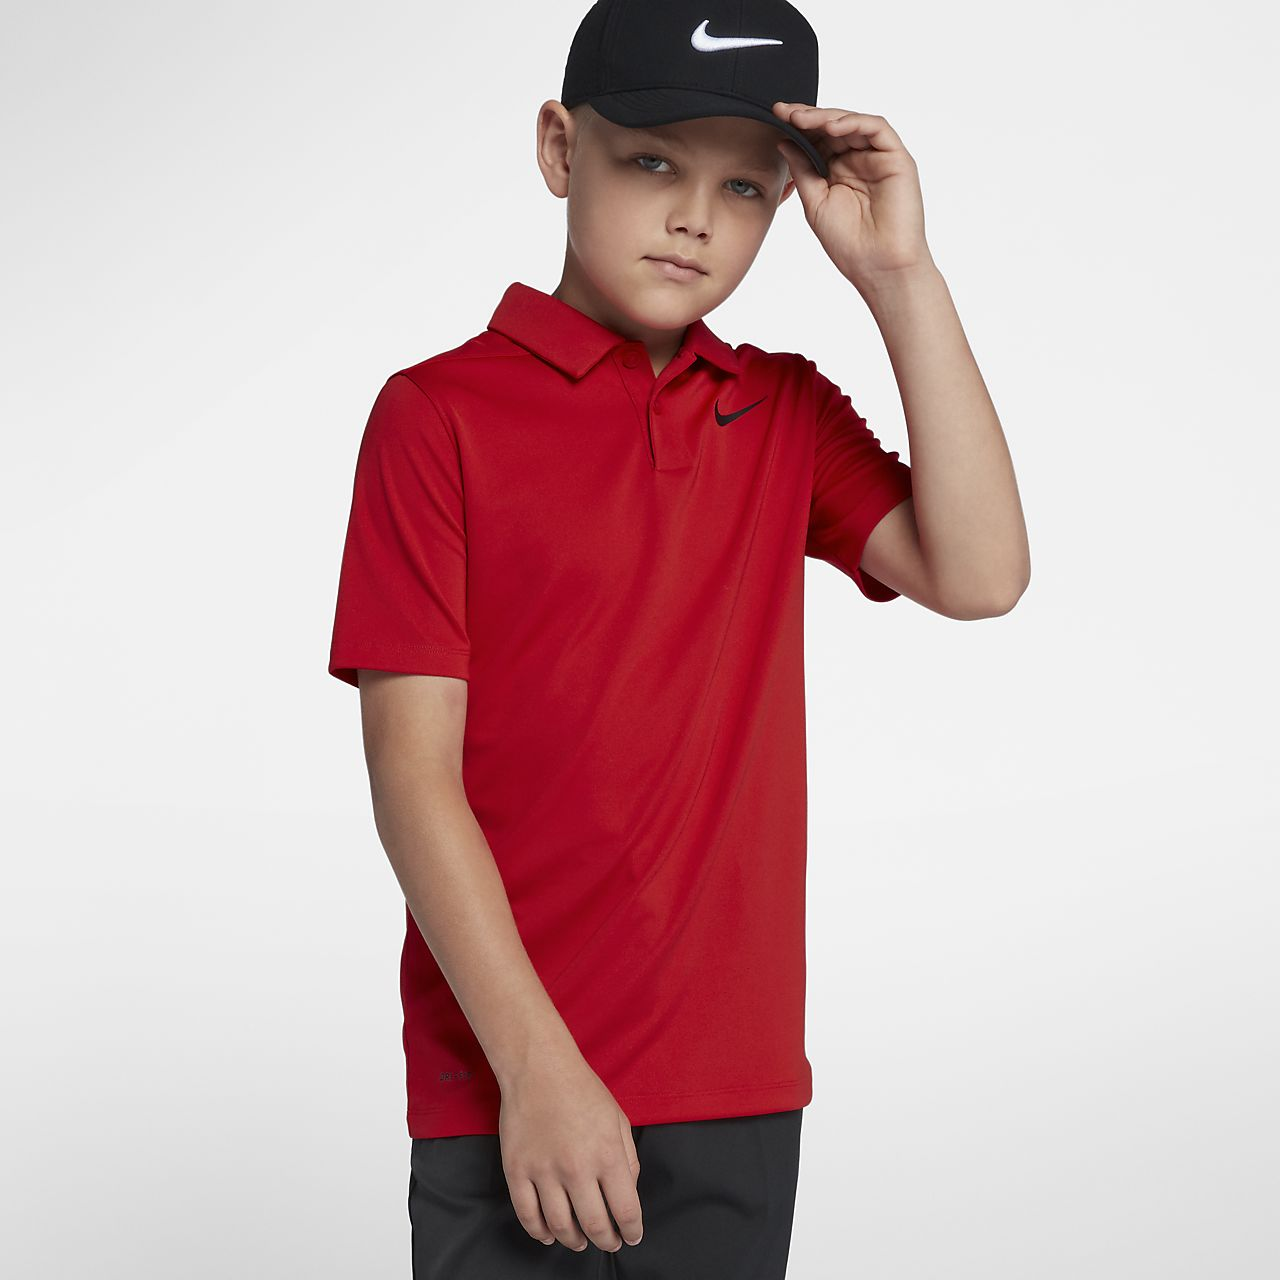 Nike Dri-FIT Victory Big Kids' (Boys') Golf Polo